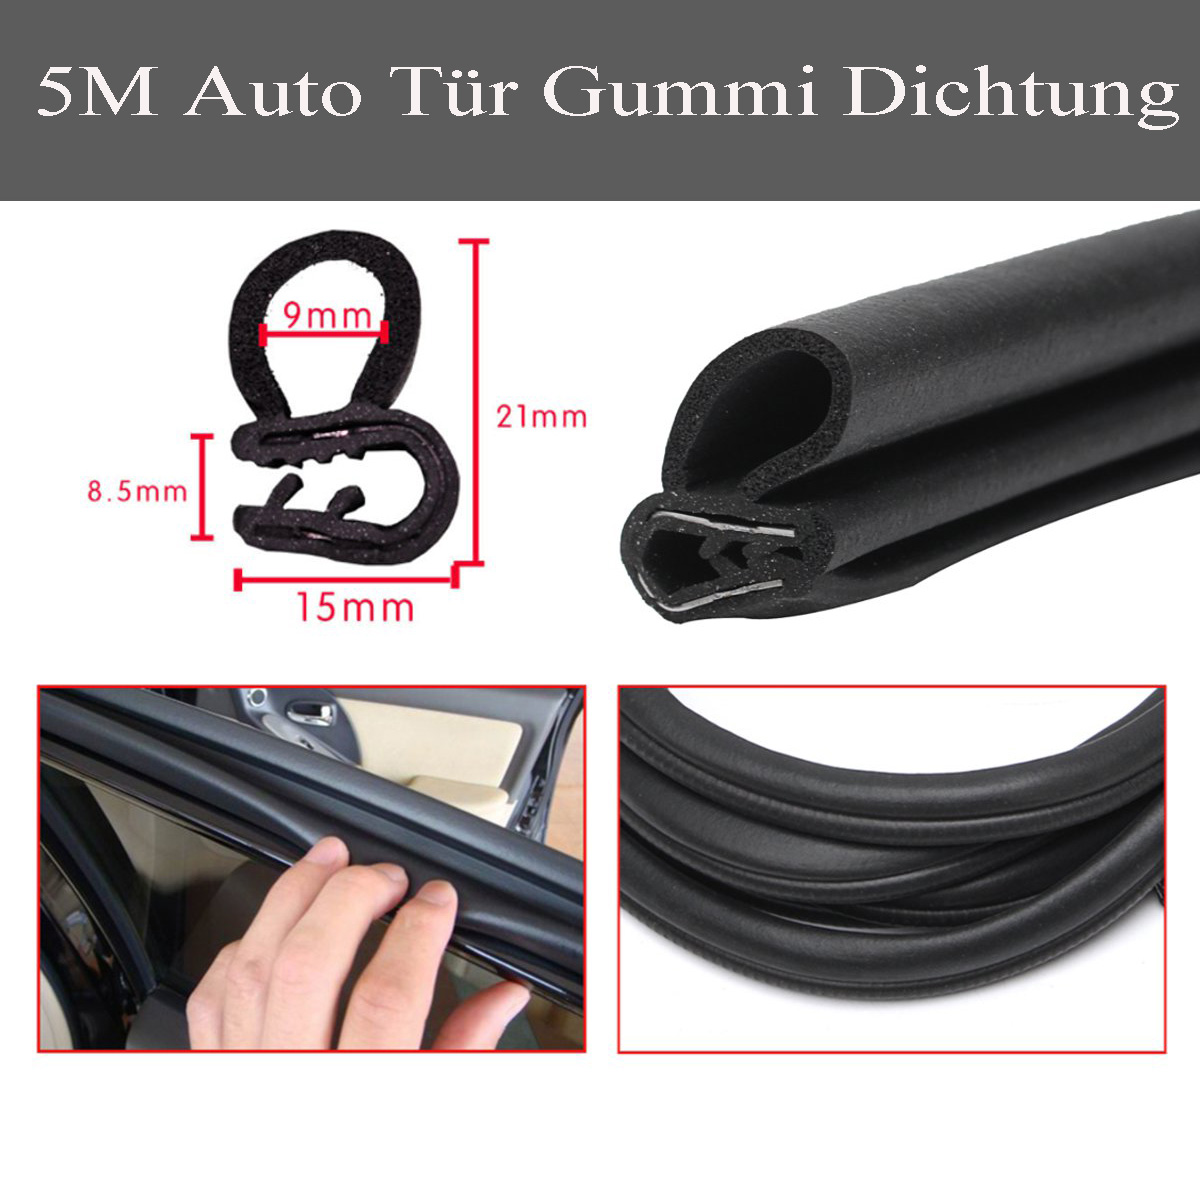 Fast Deliver 5 M Black Car Edge Protector U-shaped Rubber Auto Door Noise Insulation Anti-dust Soundproof Sealing Strips Trim Attractive Designs;